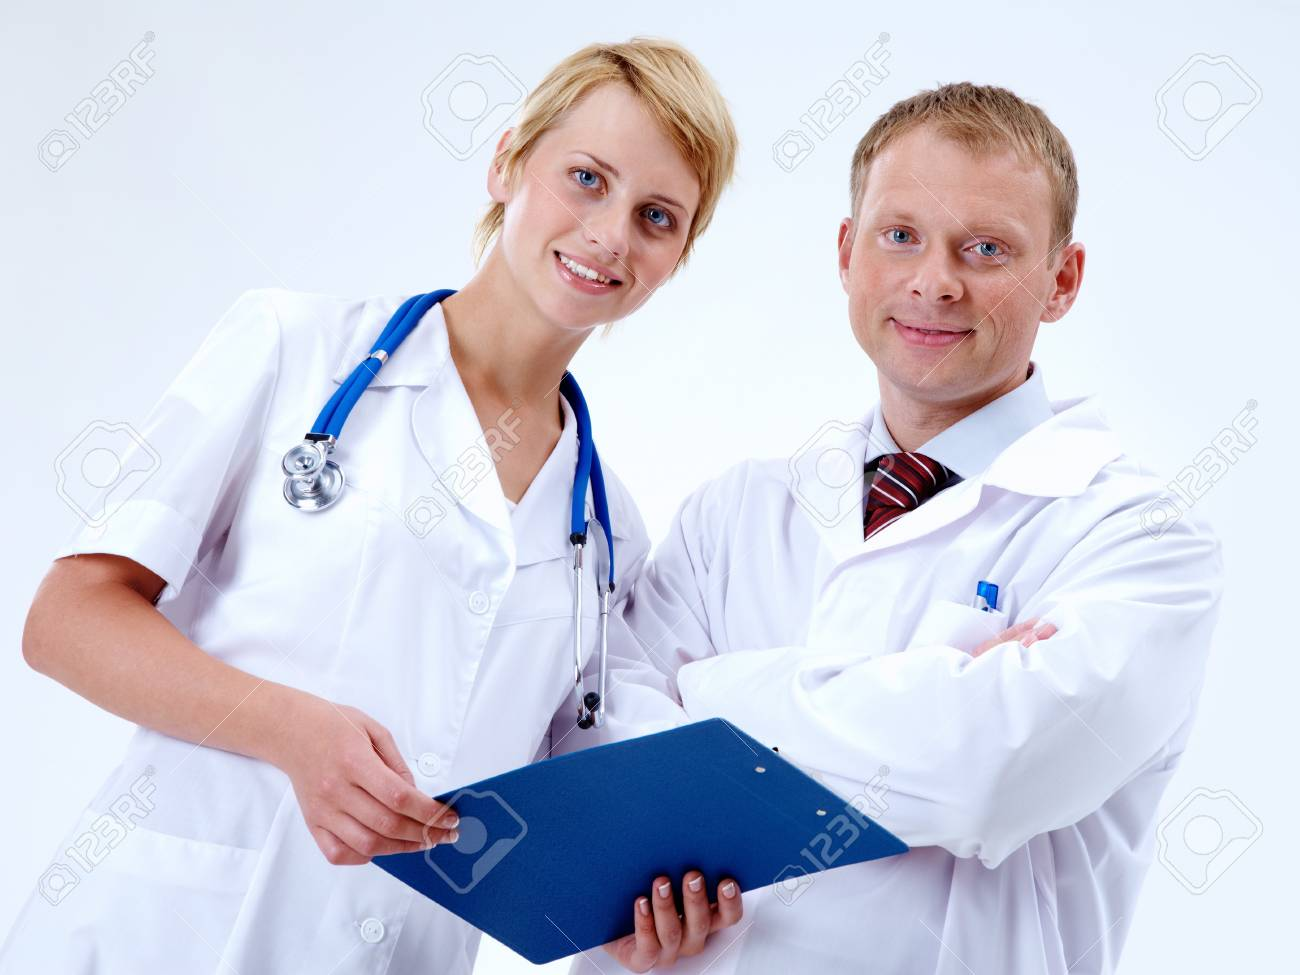 Portrait of friendly therapists looking at camera with smiles Stock Photo - 11236290